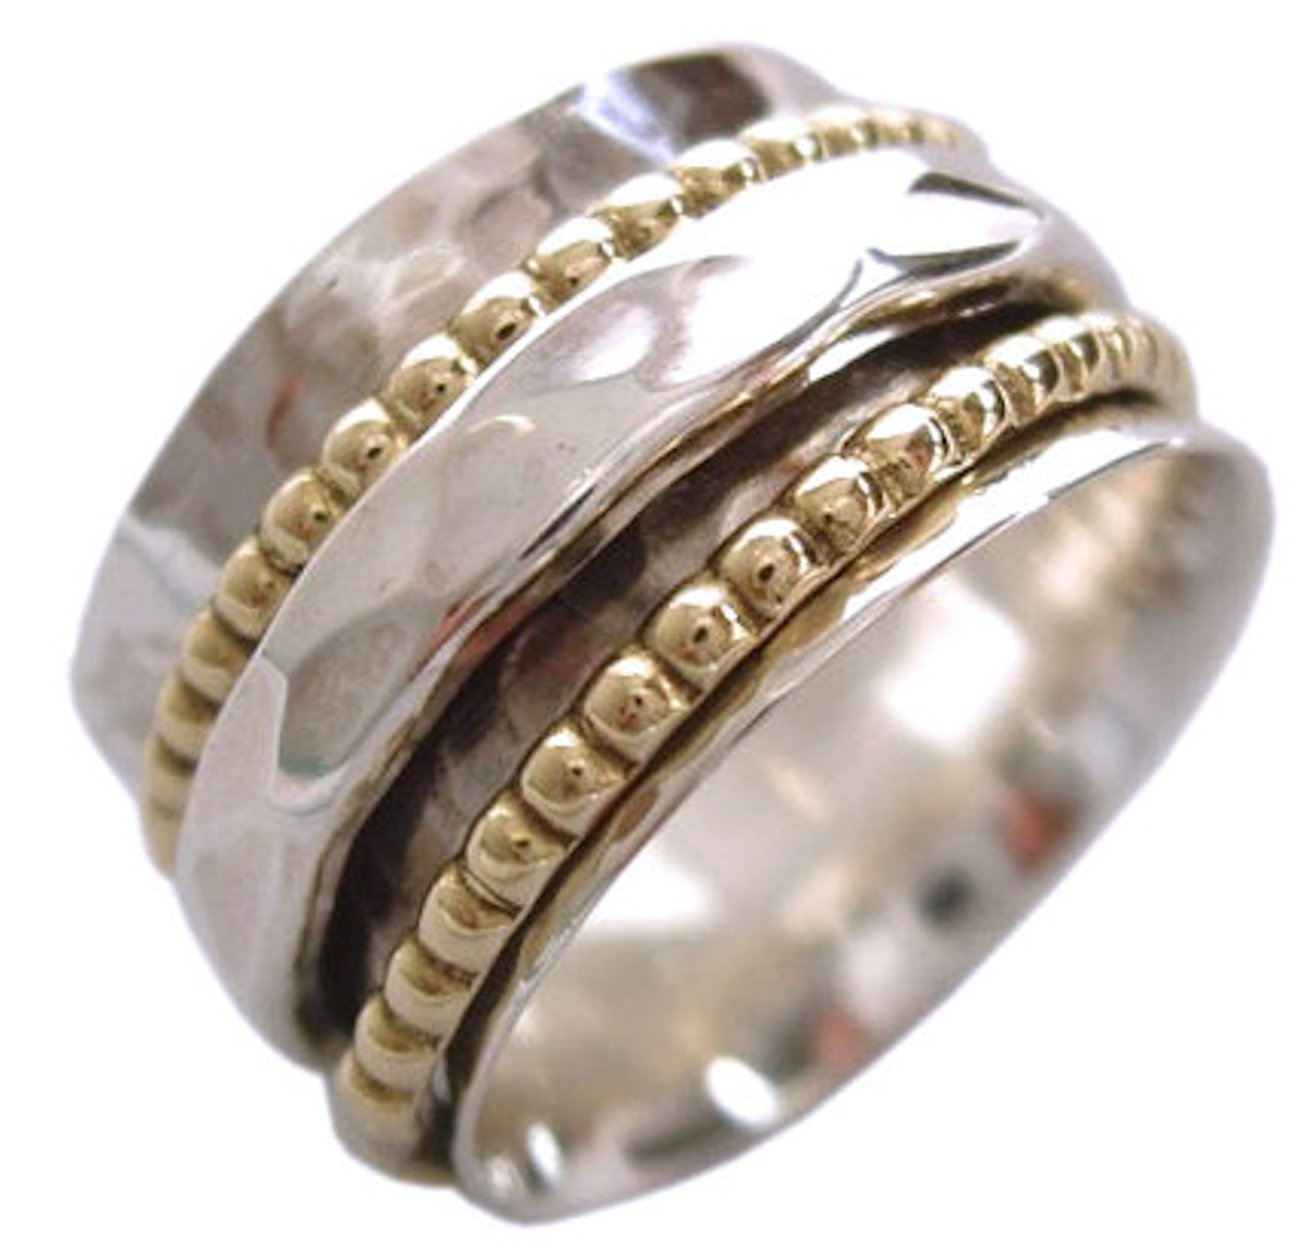 Energy Stone Sterling Silver Spinning Meditation Ring Hammered Pattern Base Shank with 2 Beaded Brass and 1 Hammered Pattern Spinners (Sku# SR01) (7)